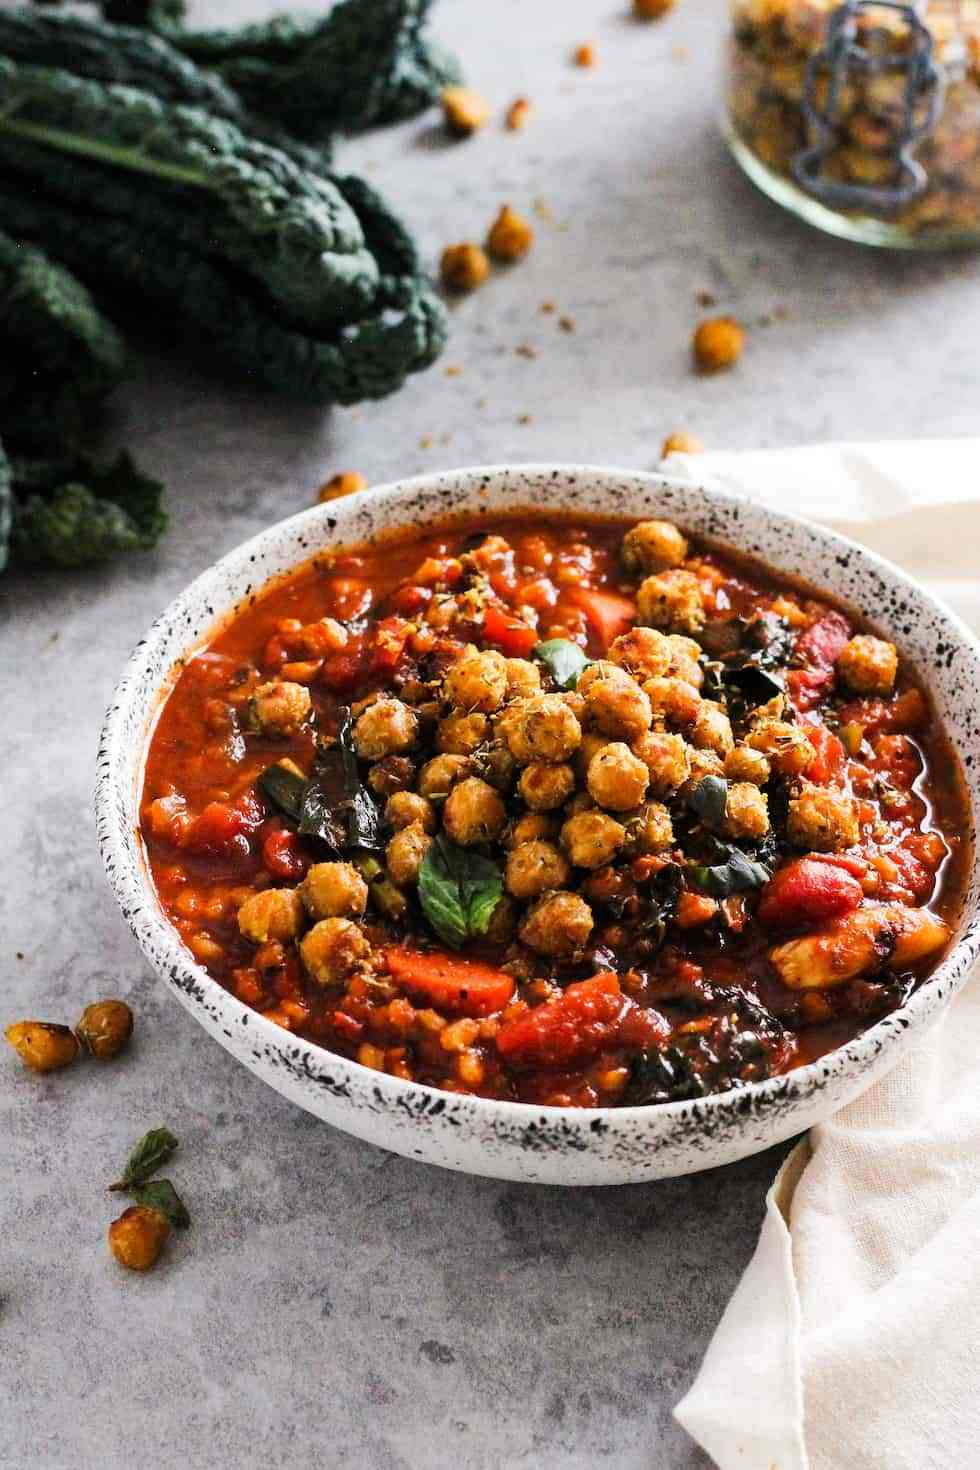 vegan tomato barley soup on grey background with kale.